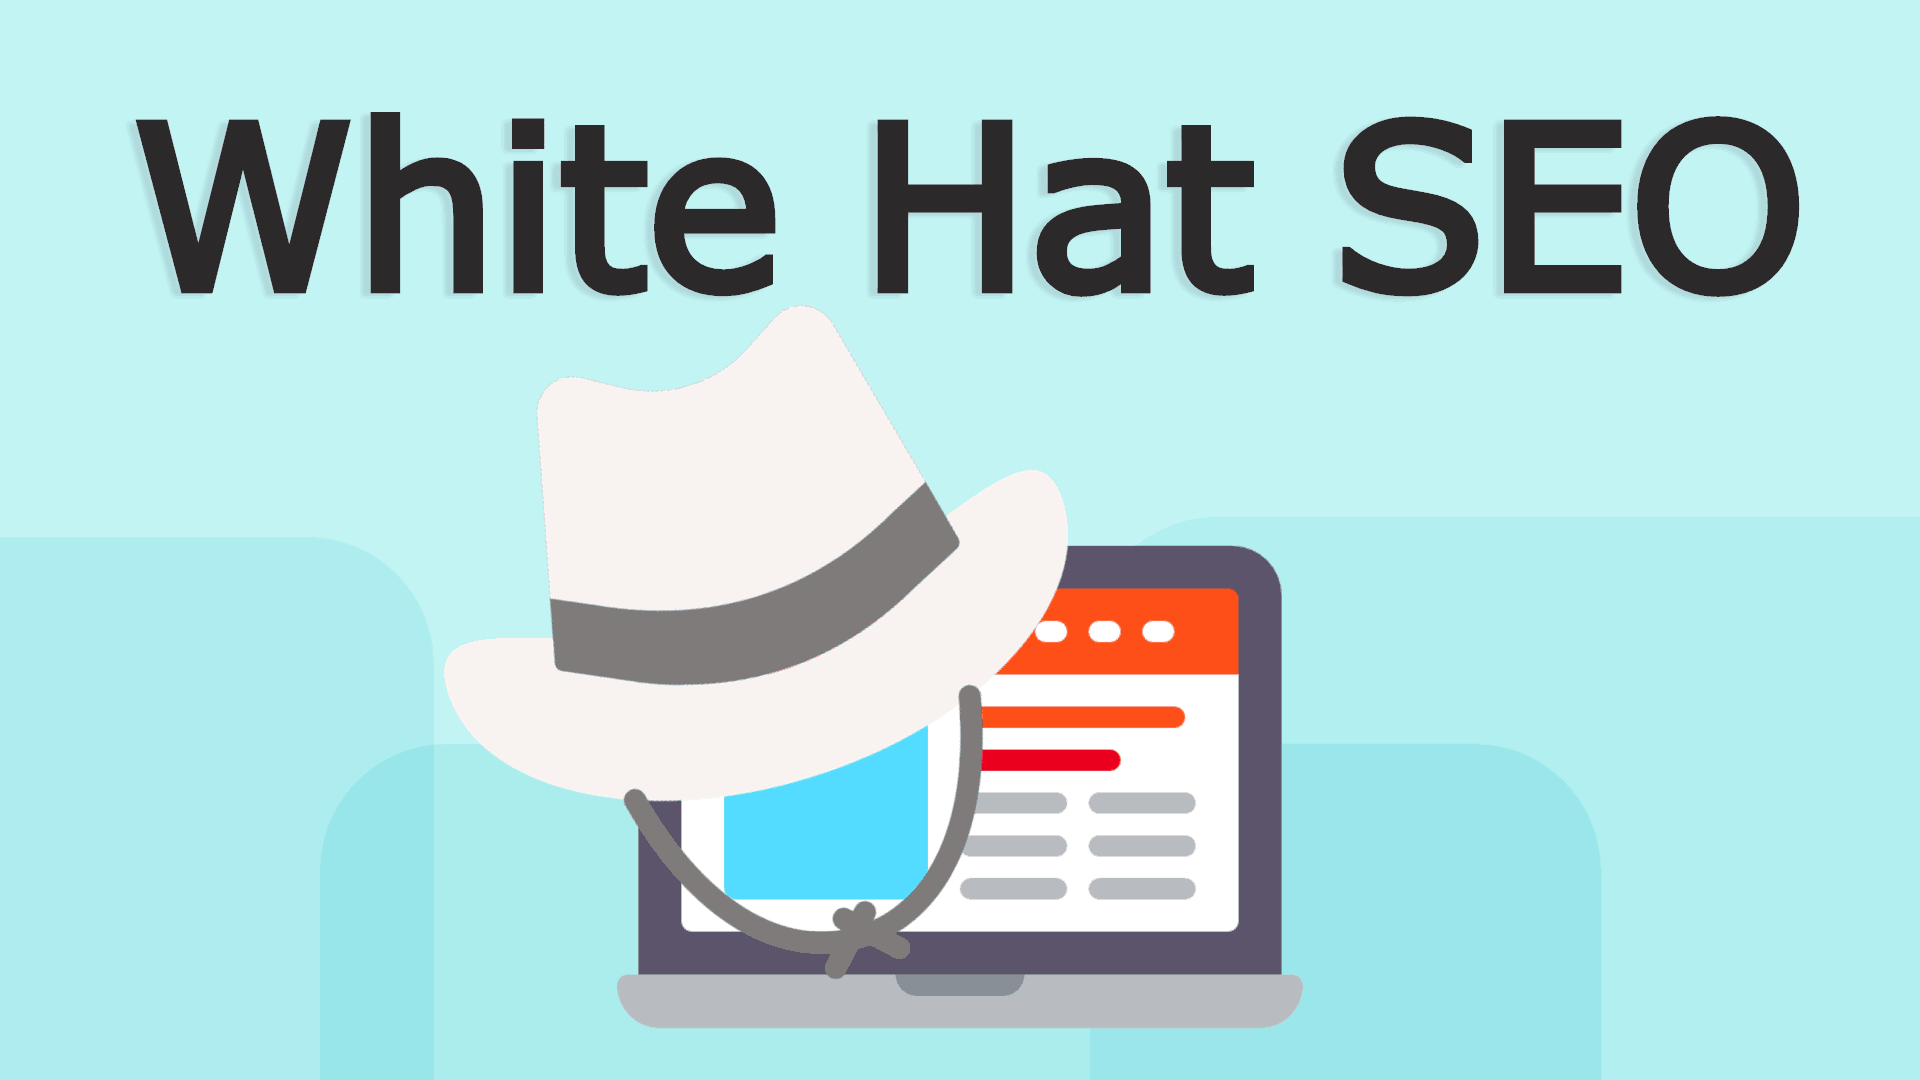 How can you increase web traffic using white hat SEO?